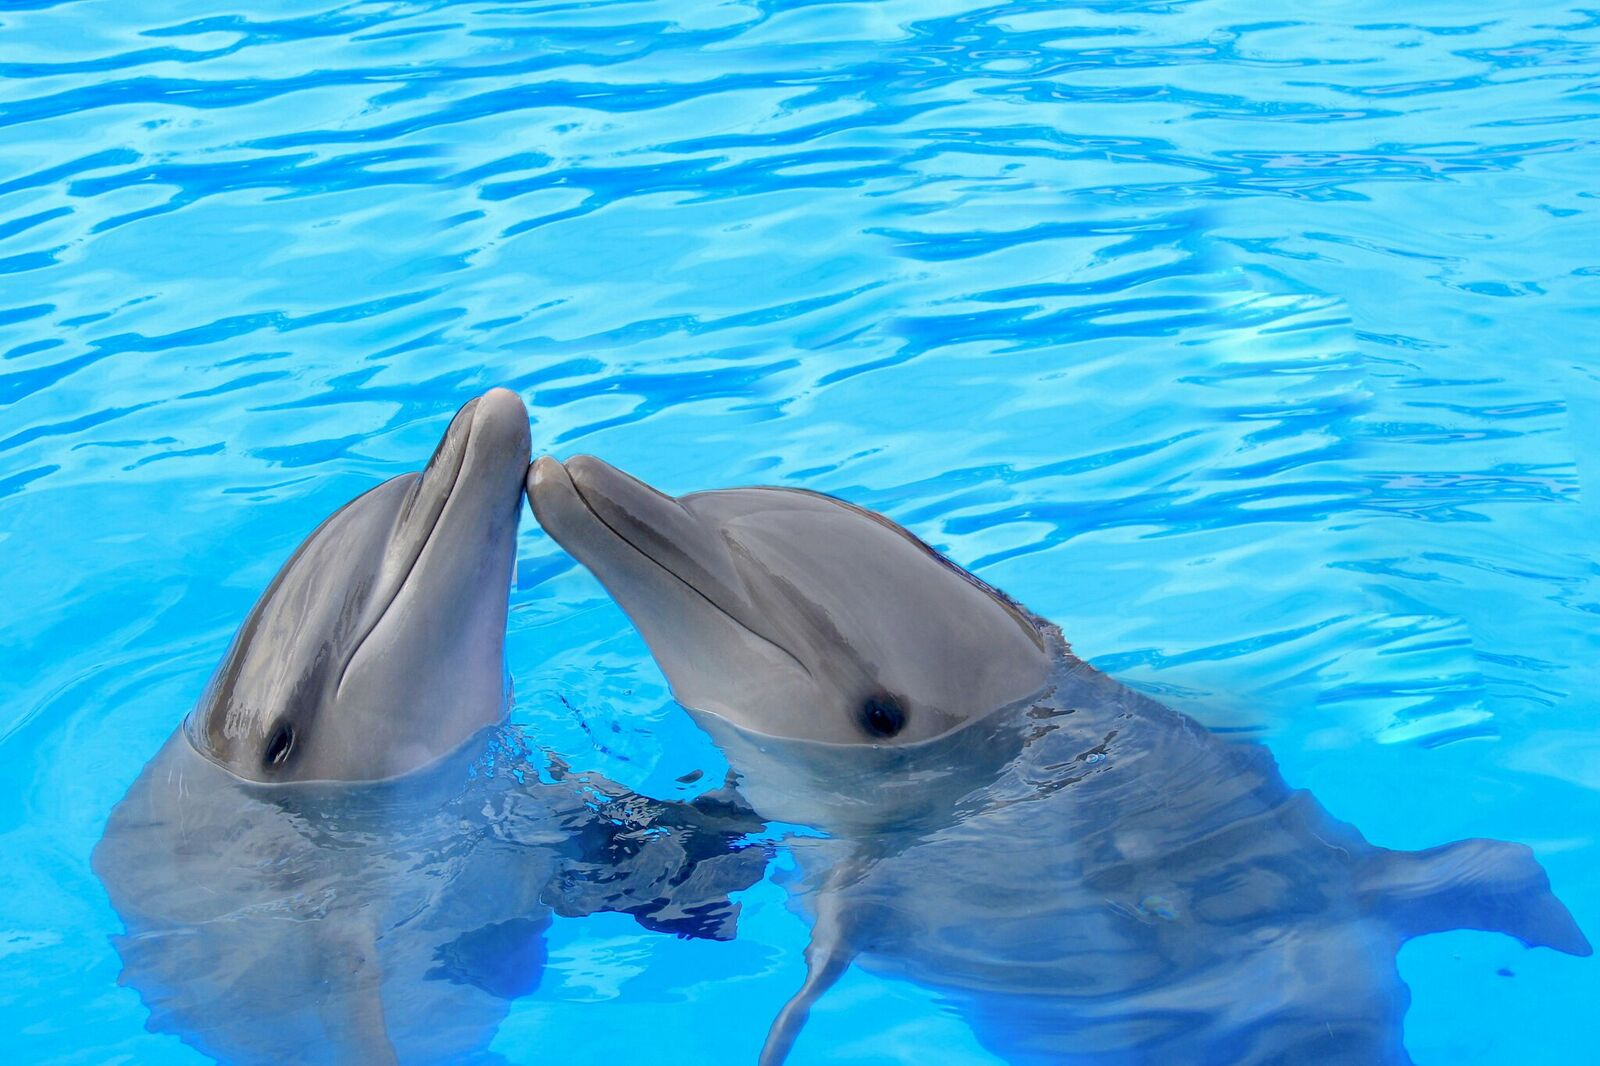 Sharing is caring. Dolphins hanging in the water.